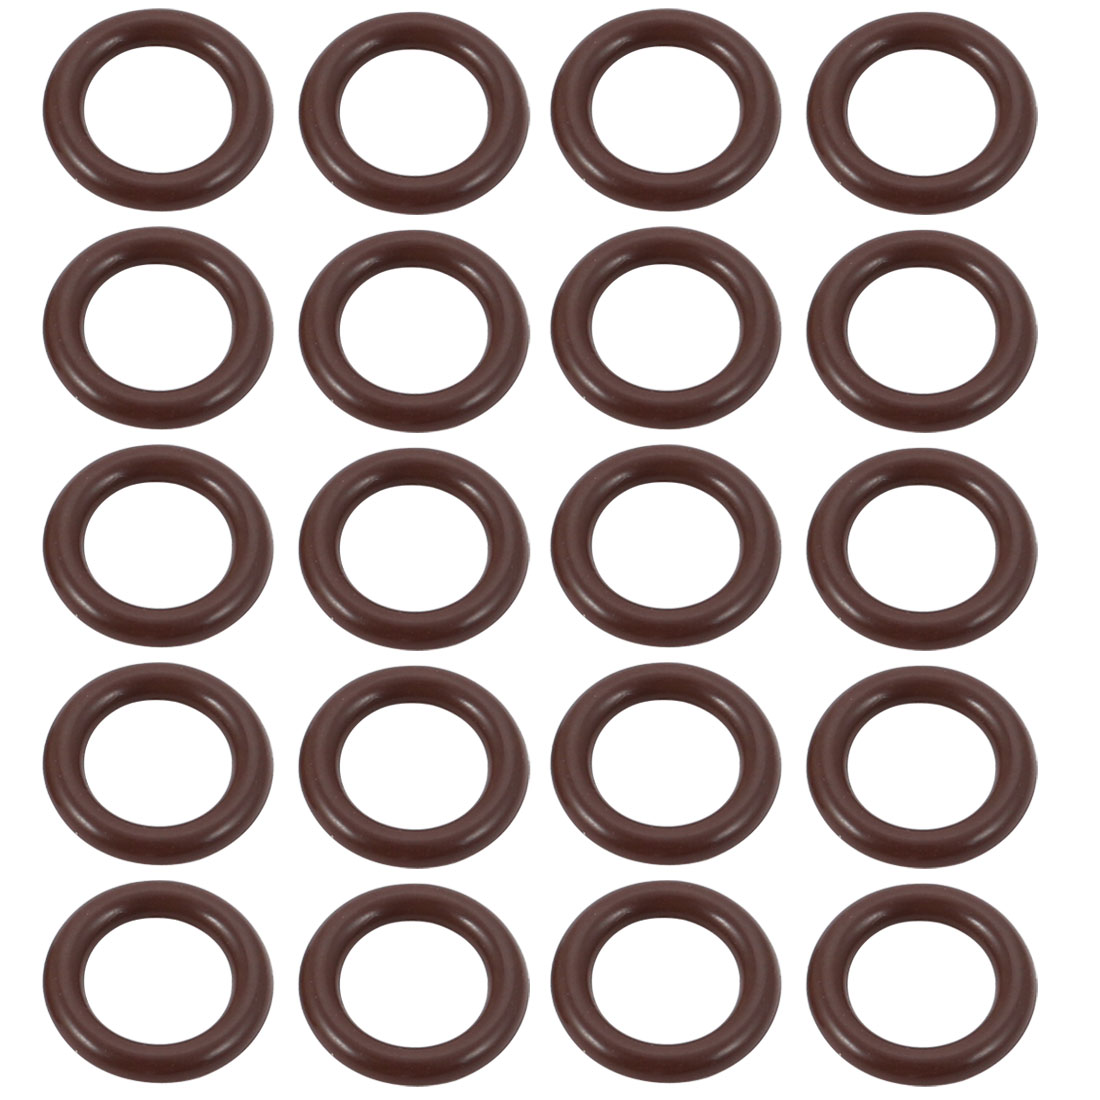 20pcs Brown 10.5mm Outer Dia 1.9mm Thickness Sealing Ring O-shape Rubber Grommet